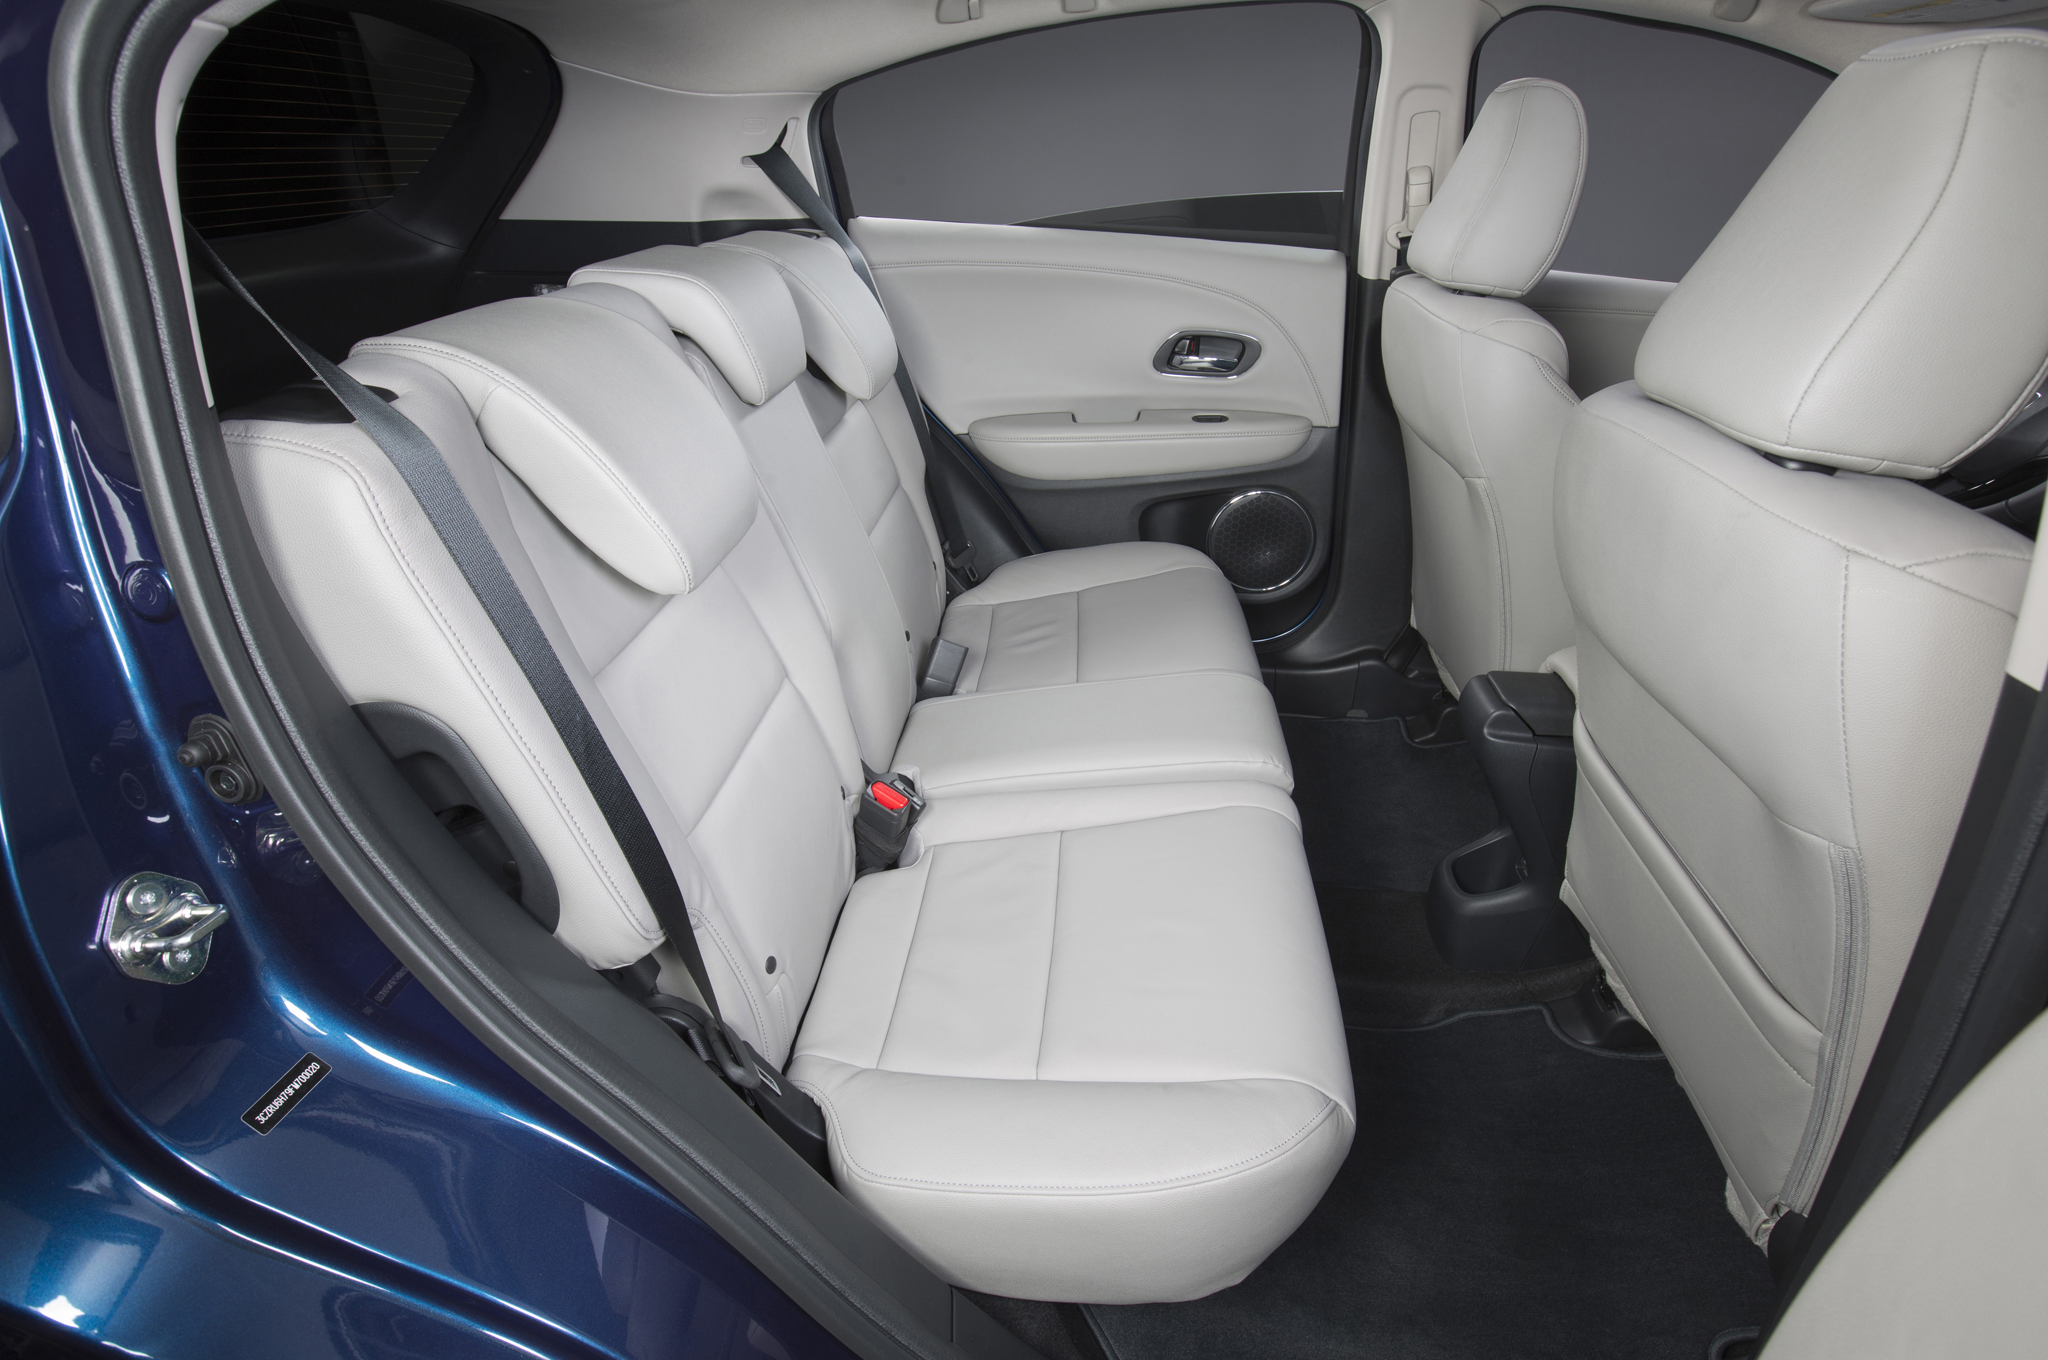 2016 Honda HR-V Rear Seats View